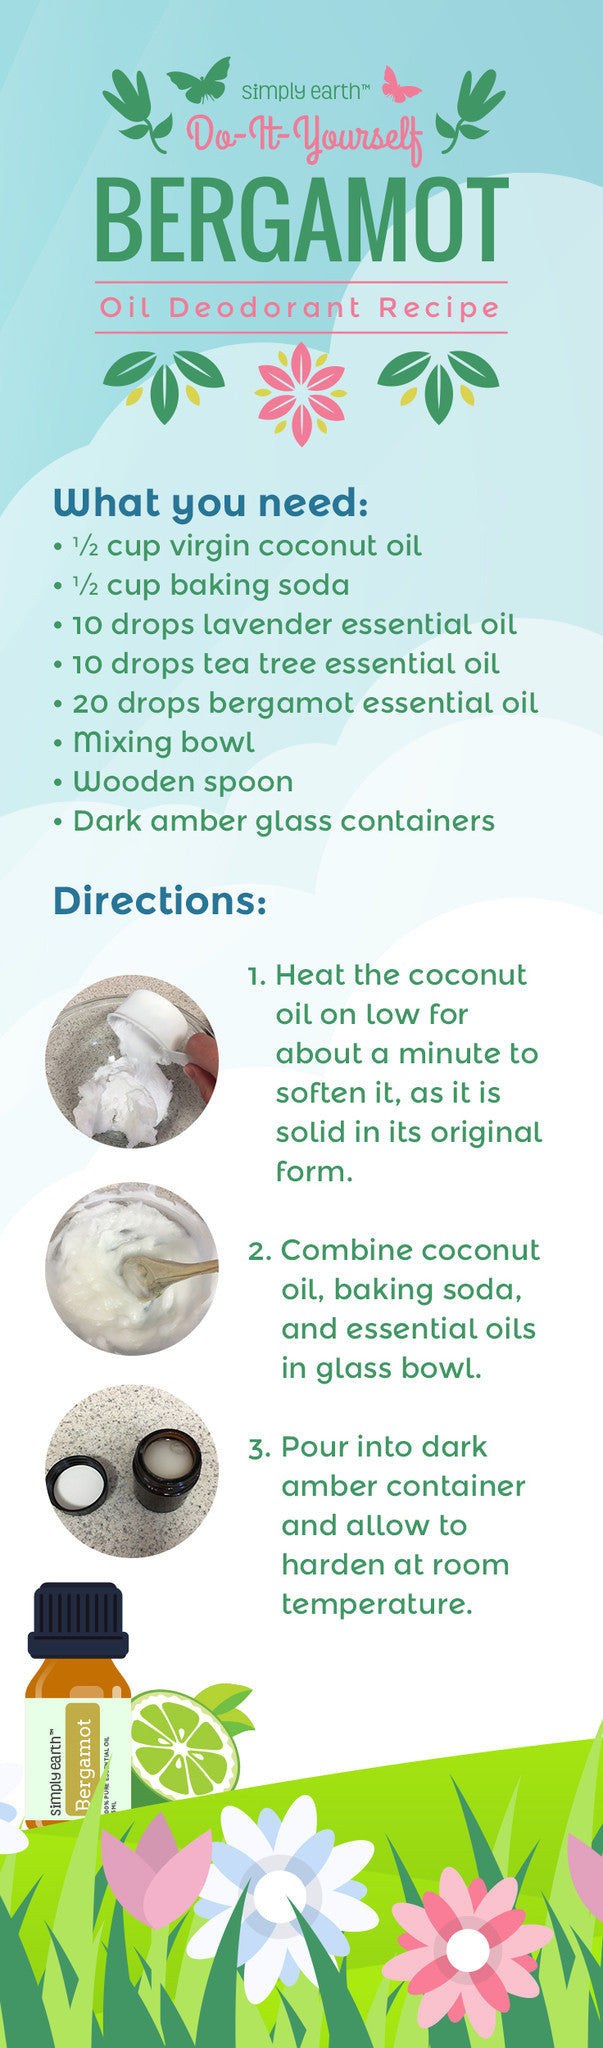 DIY deodorant recipe infographic